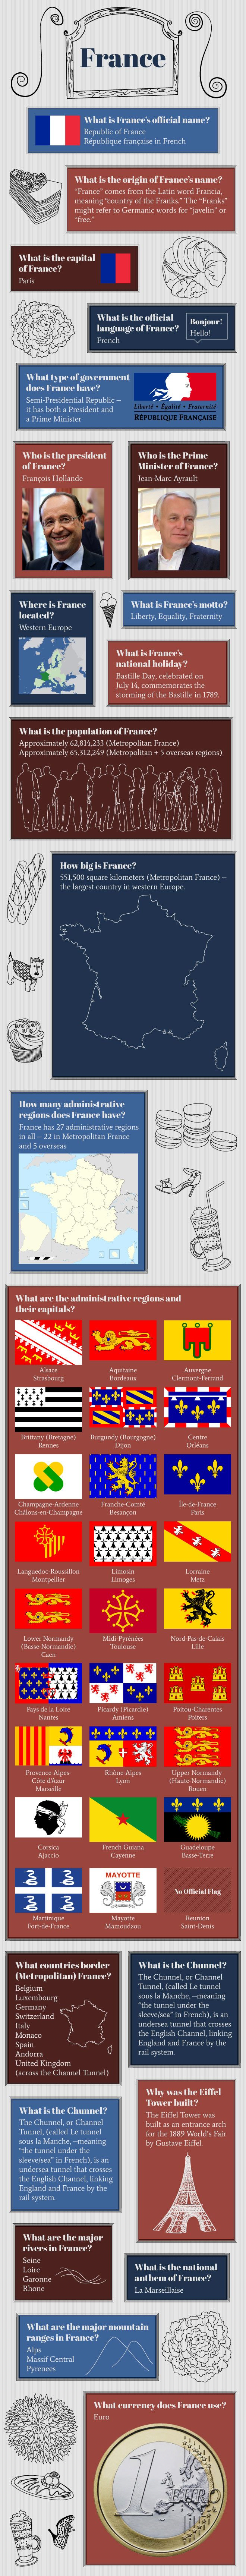 #Infographic of #France Fast Facts http://www.mapsofworld.com/pages/fast-facts/infographic-of-france-fast-facts/